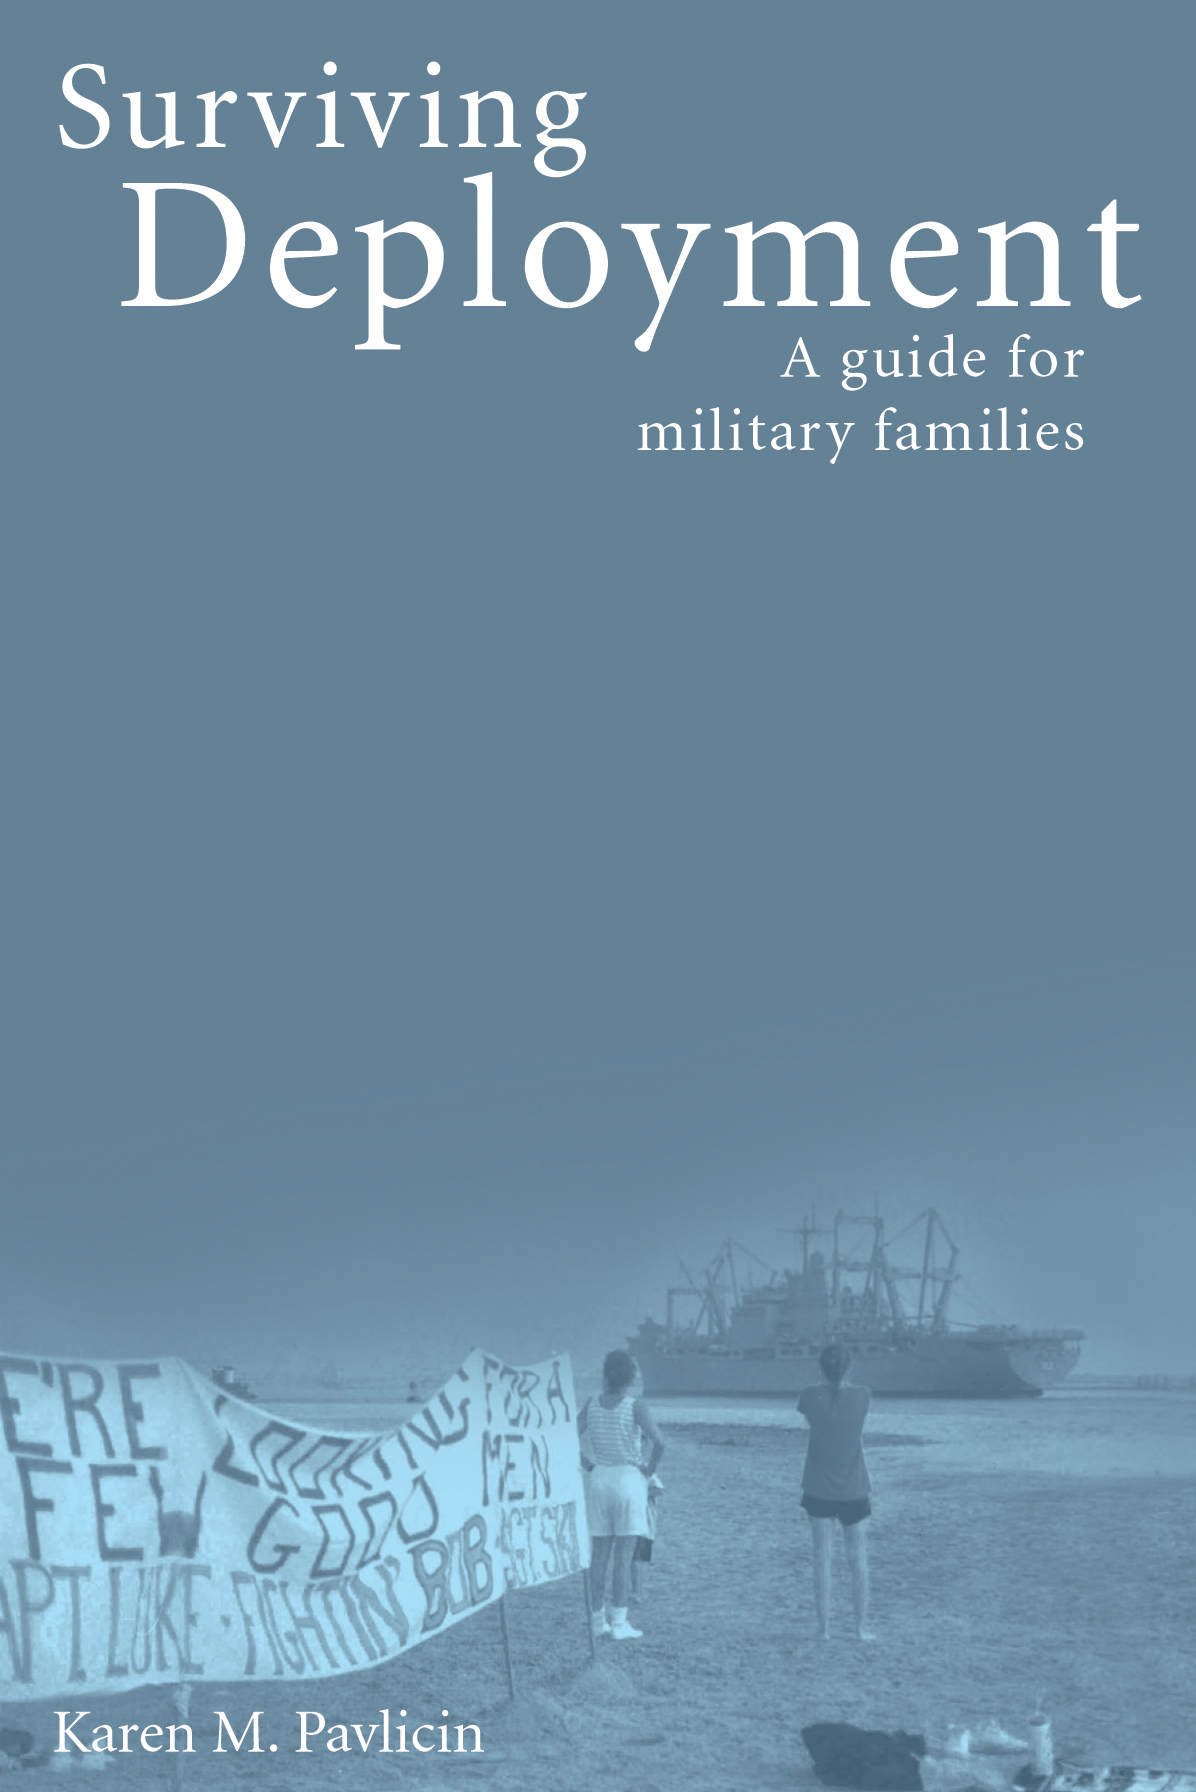 Surviving Deployment: A guide for military families by Karen Pavlicin